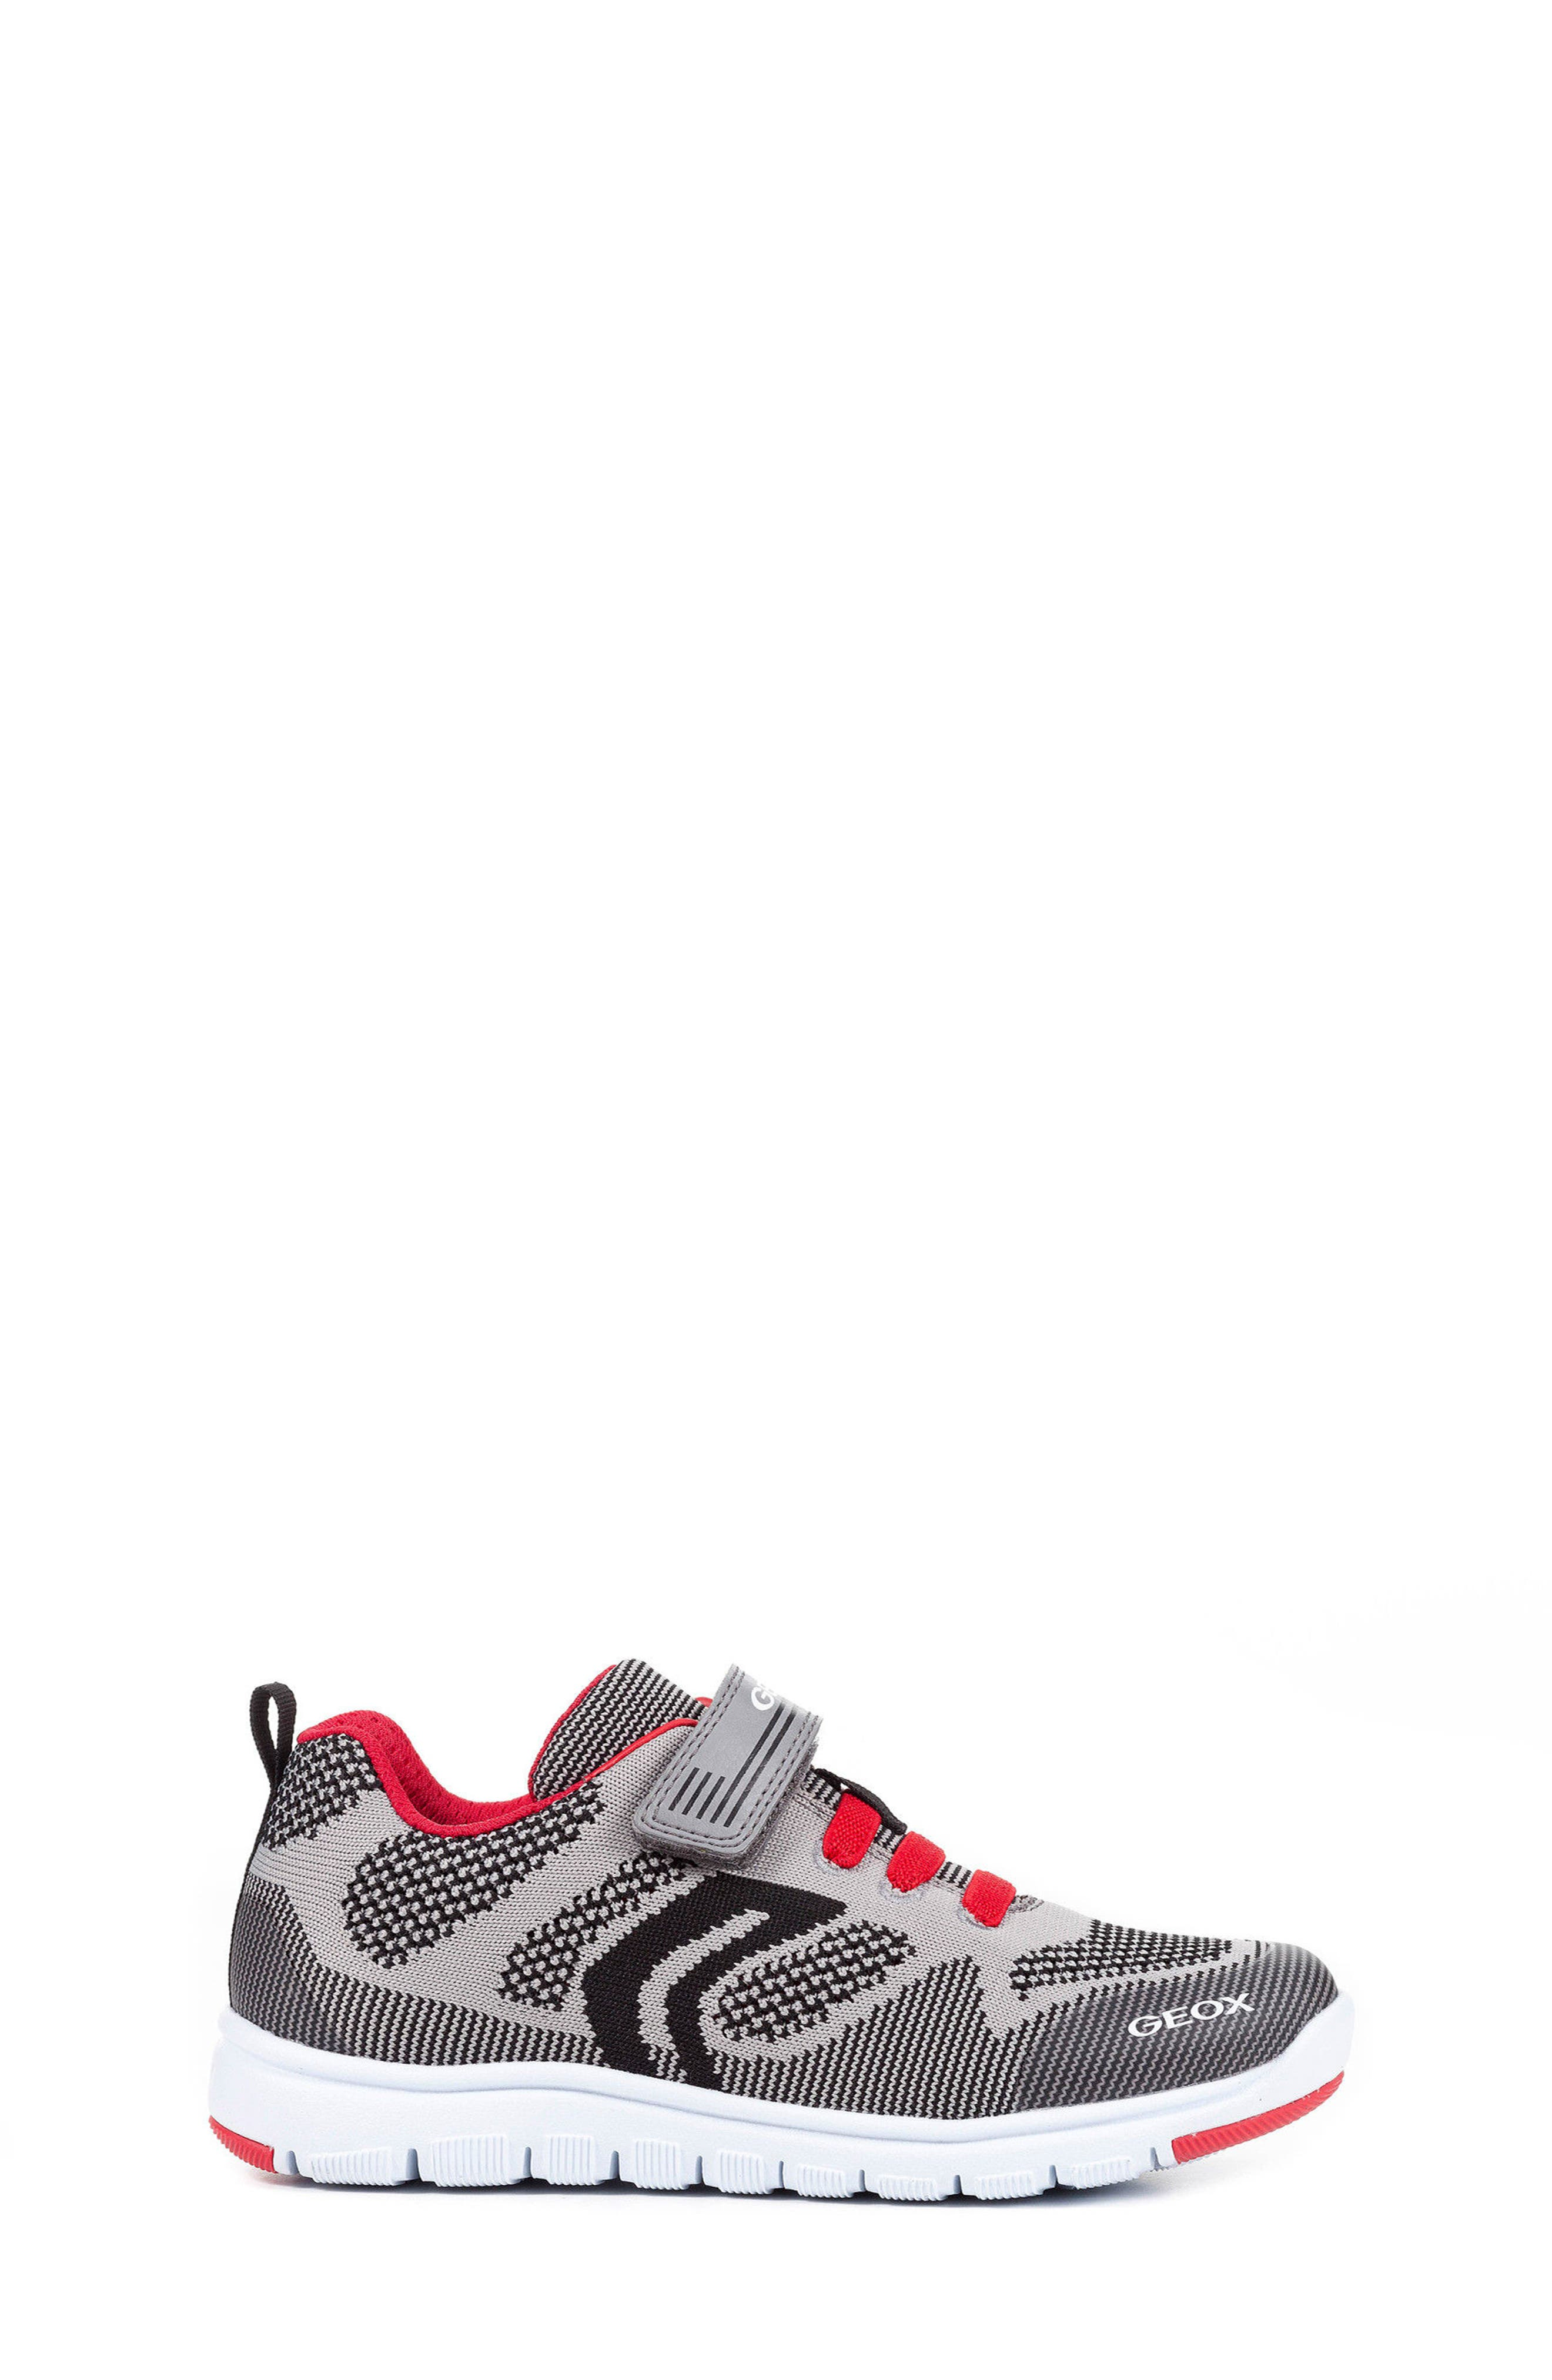 Xunday Low Top Woven Sneaker,                             Alternate thumbnail 3, color,                             063